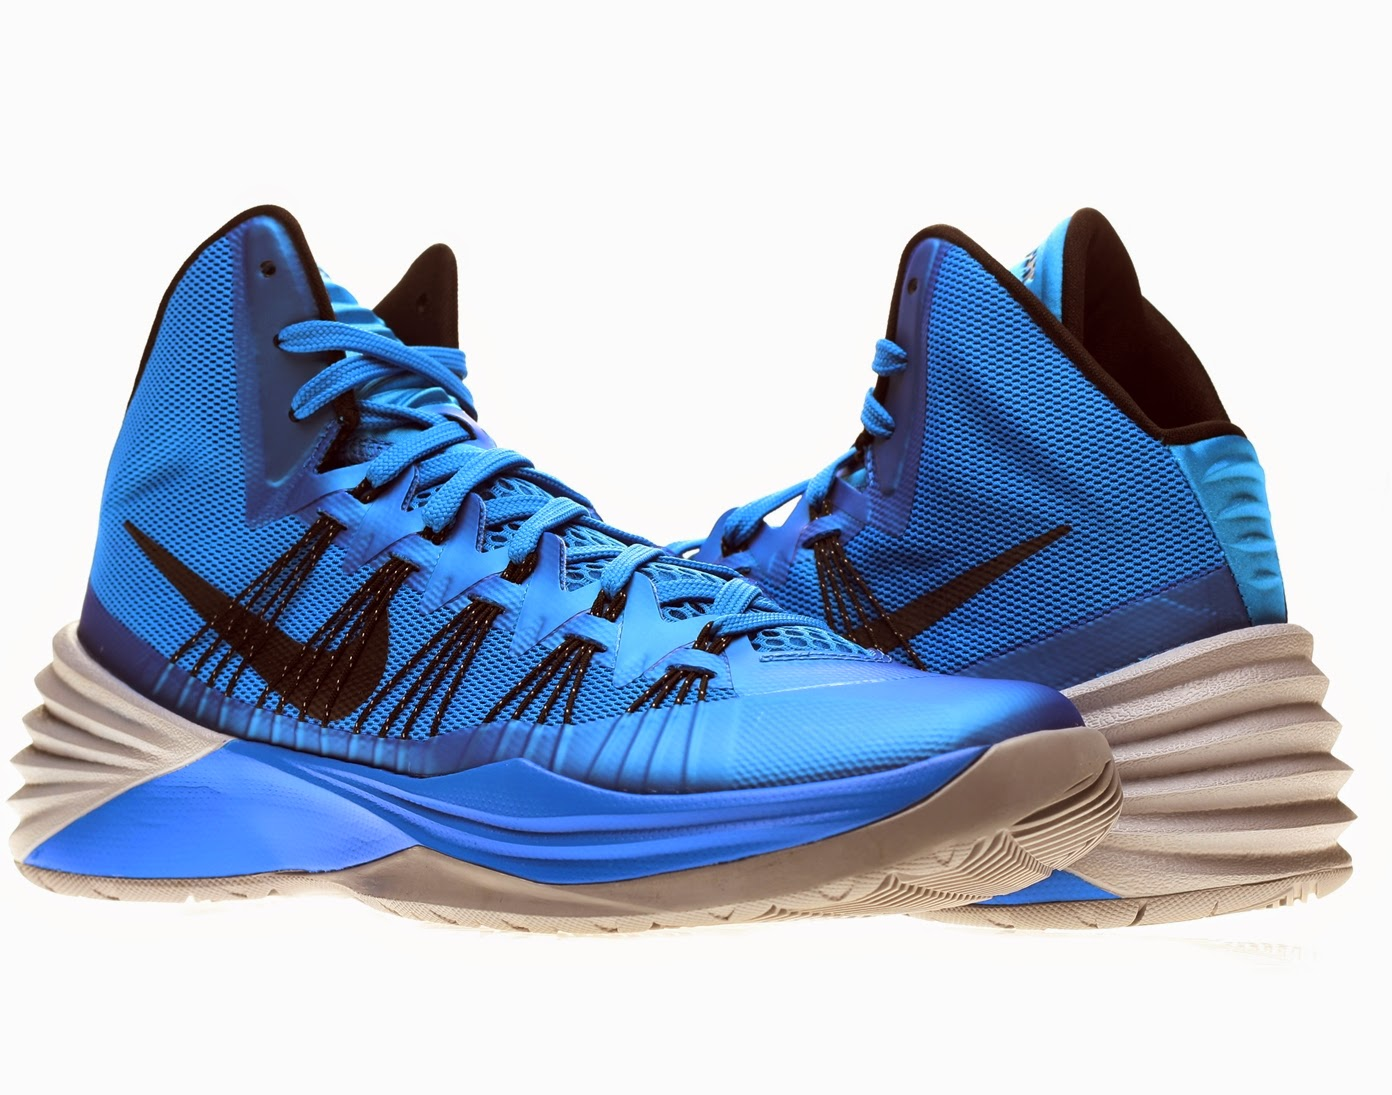 Nike 2013 basketball shoes